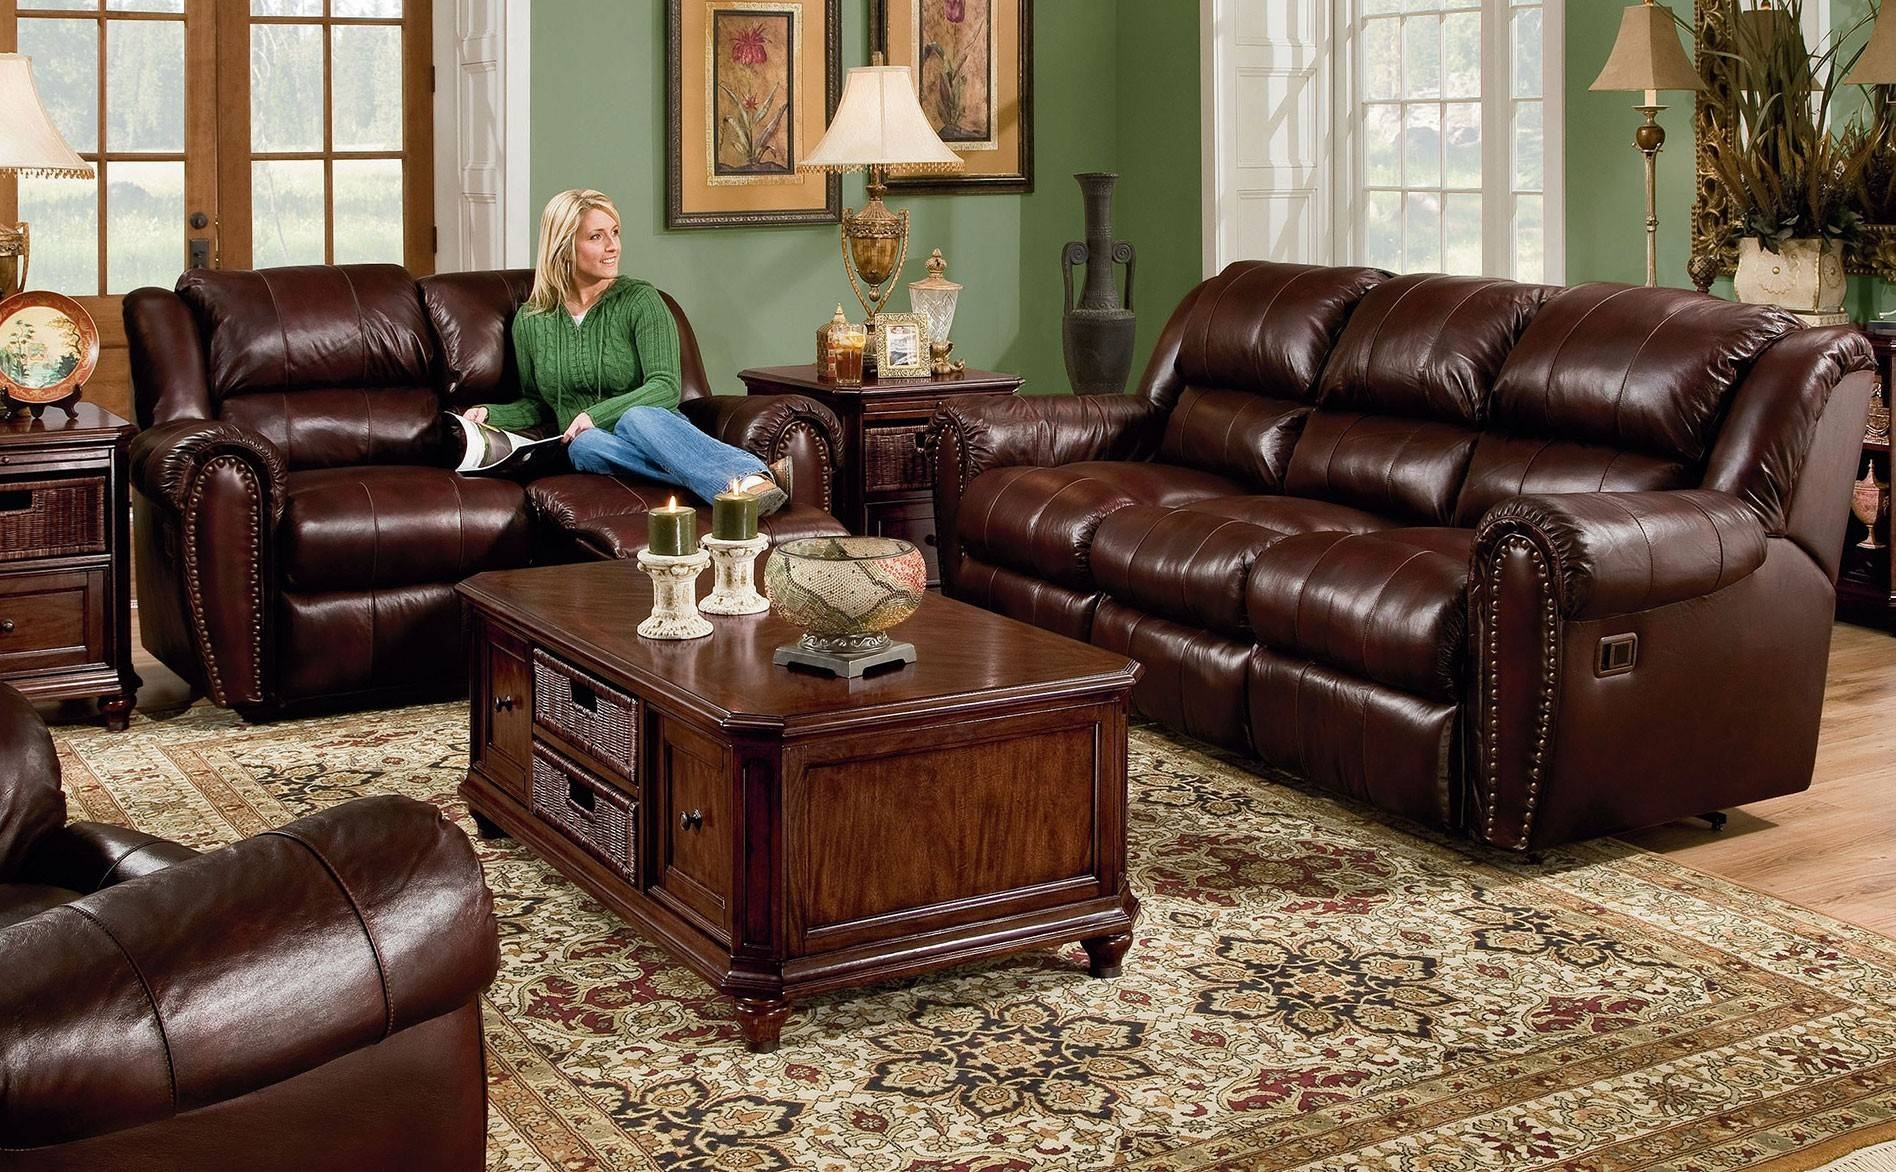 Perfect Furniture: Lane Furniture Stores | Lane Reclining Sofa | Dillards With  Regard To Lane Furniture